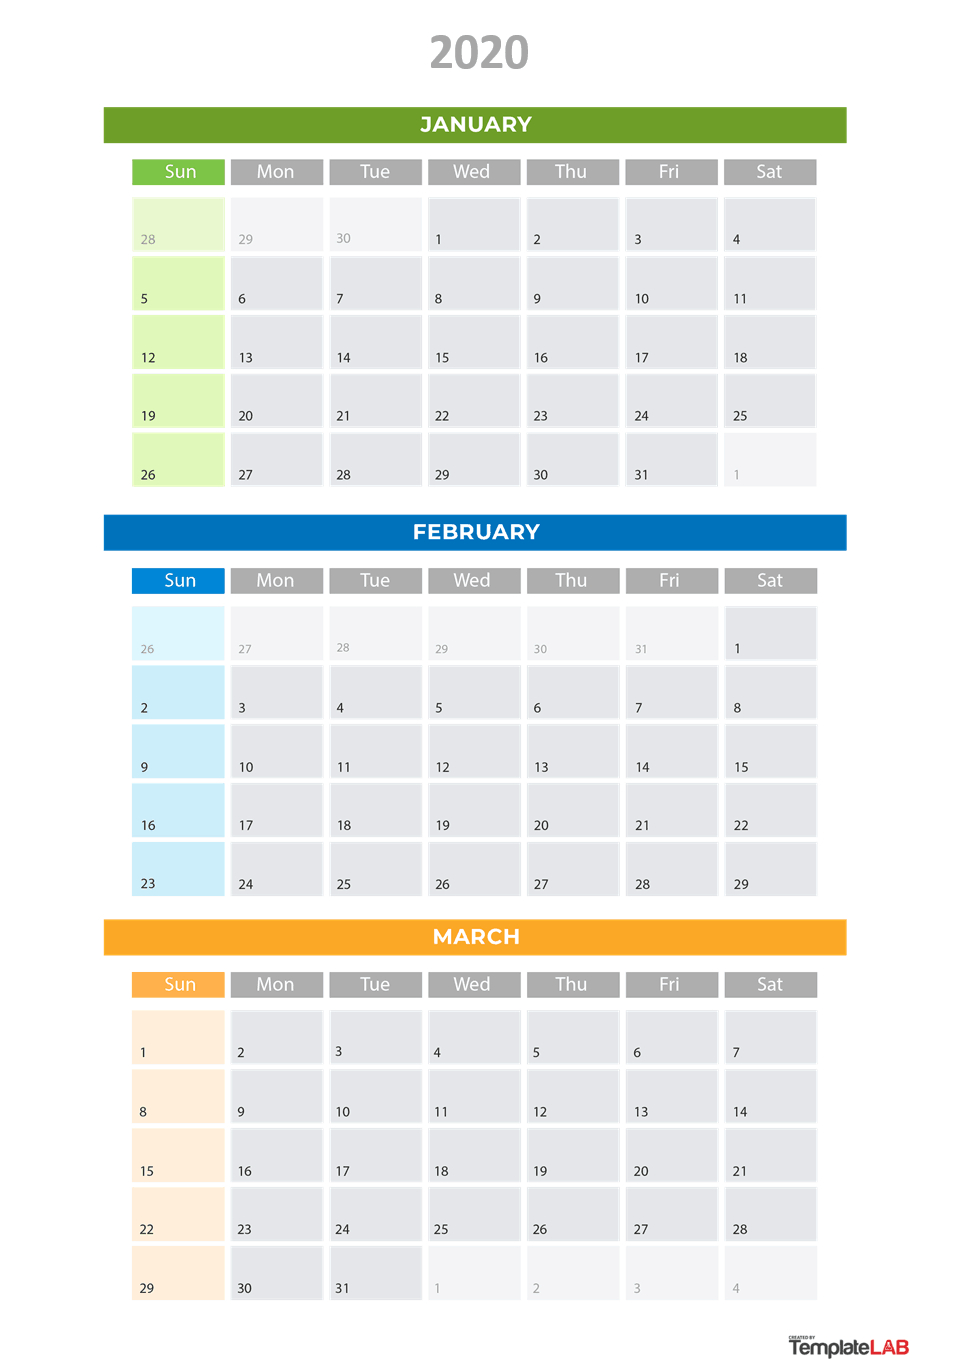 2020 Printable Calendars [Monthly, With Holidays, Yearly] ᐅ with 2020 Quarterly Calendar Printable Free